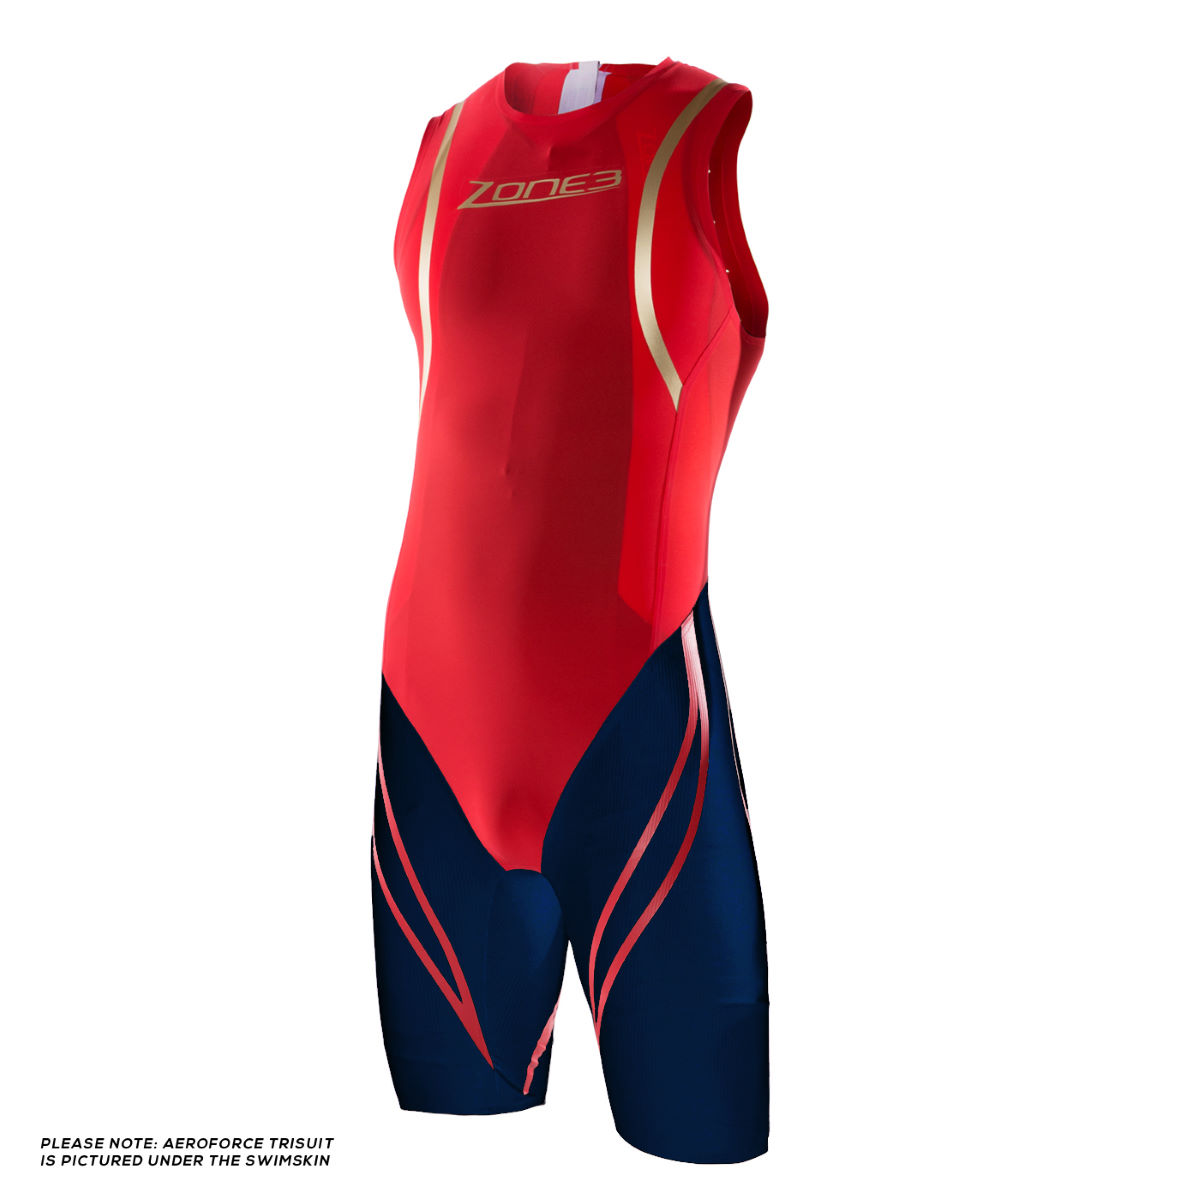 Combinaison de natation Zone3 - XL Red/Blue/Gold Swim Skins